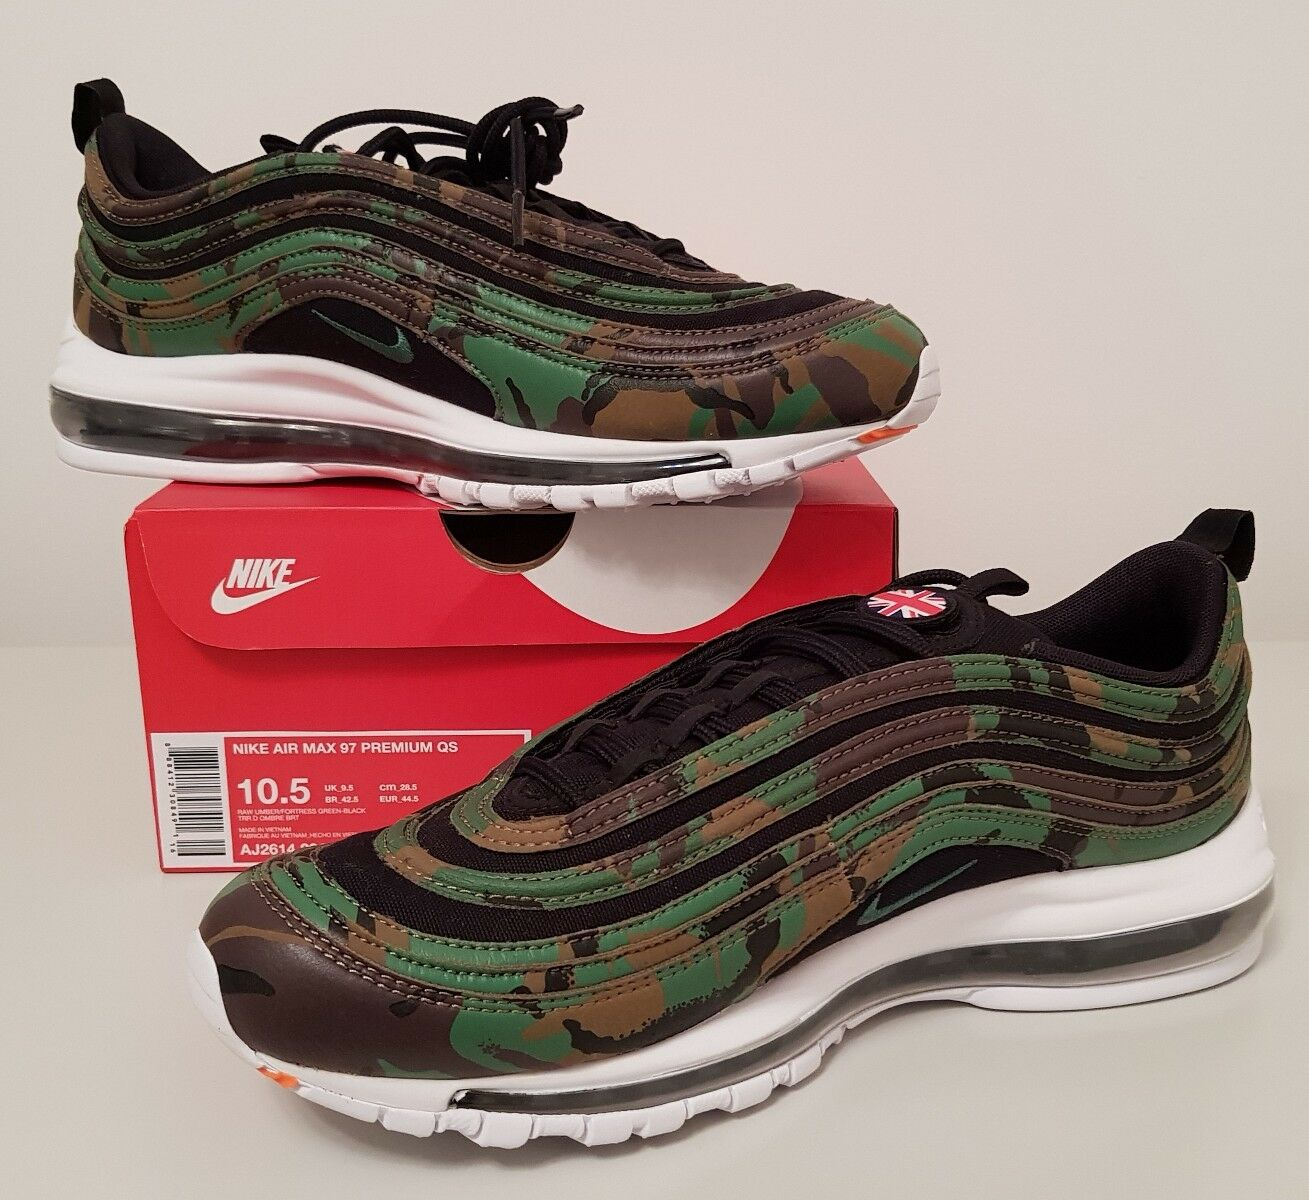 BNIB Hommes Nike Air Max 97 Premium QS Country Camo 'UK'. UK